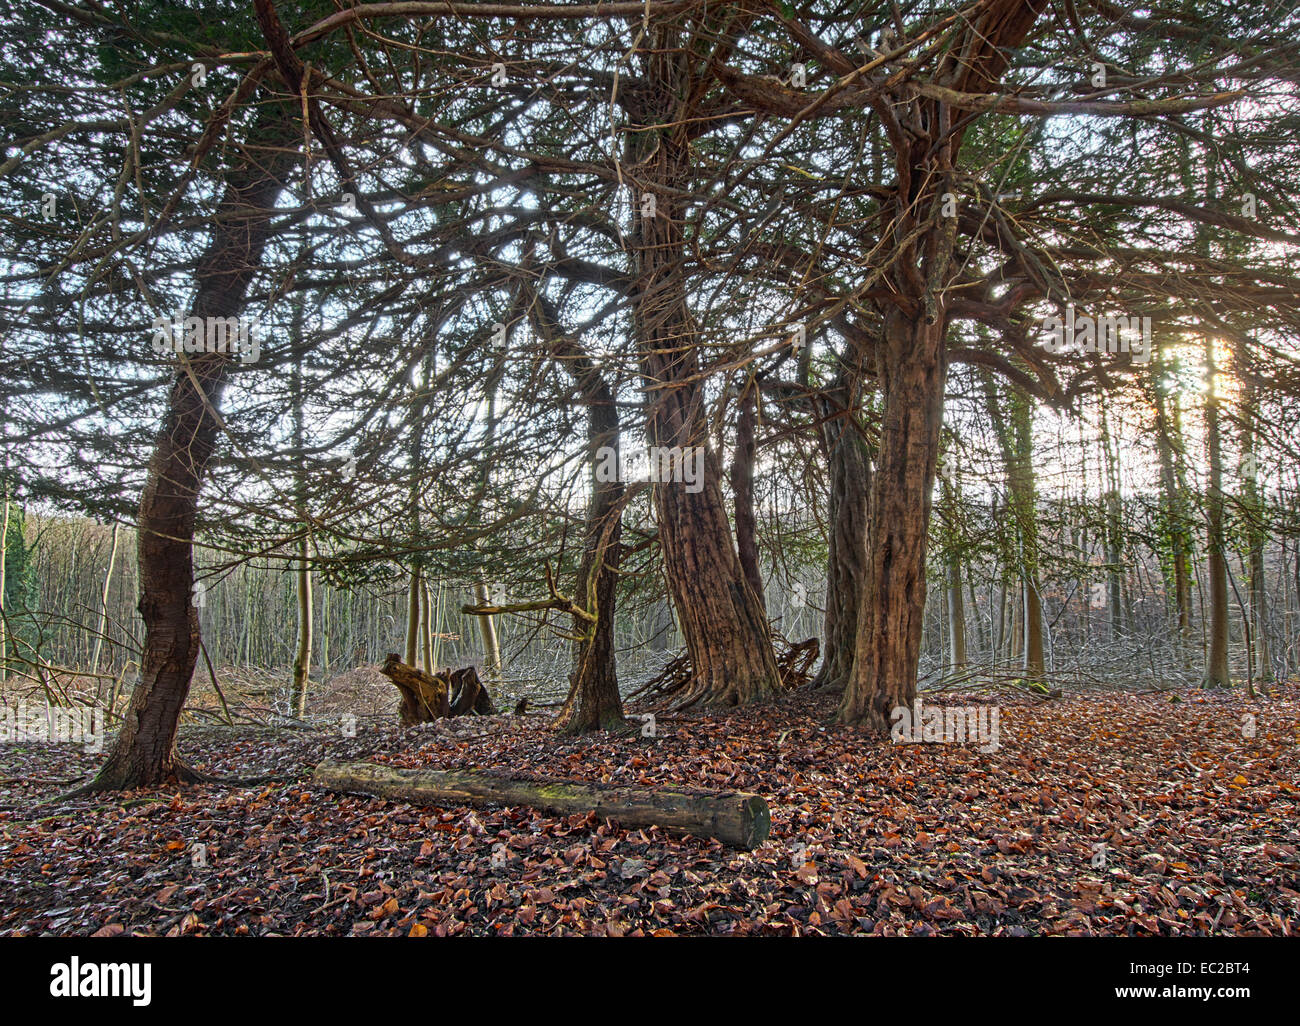 Yew trees in pine plantation - Stock Image